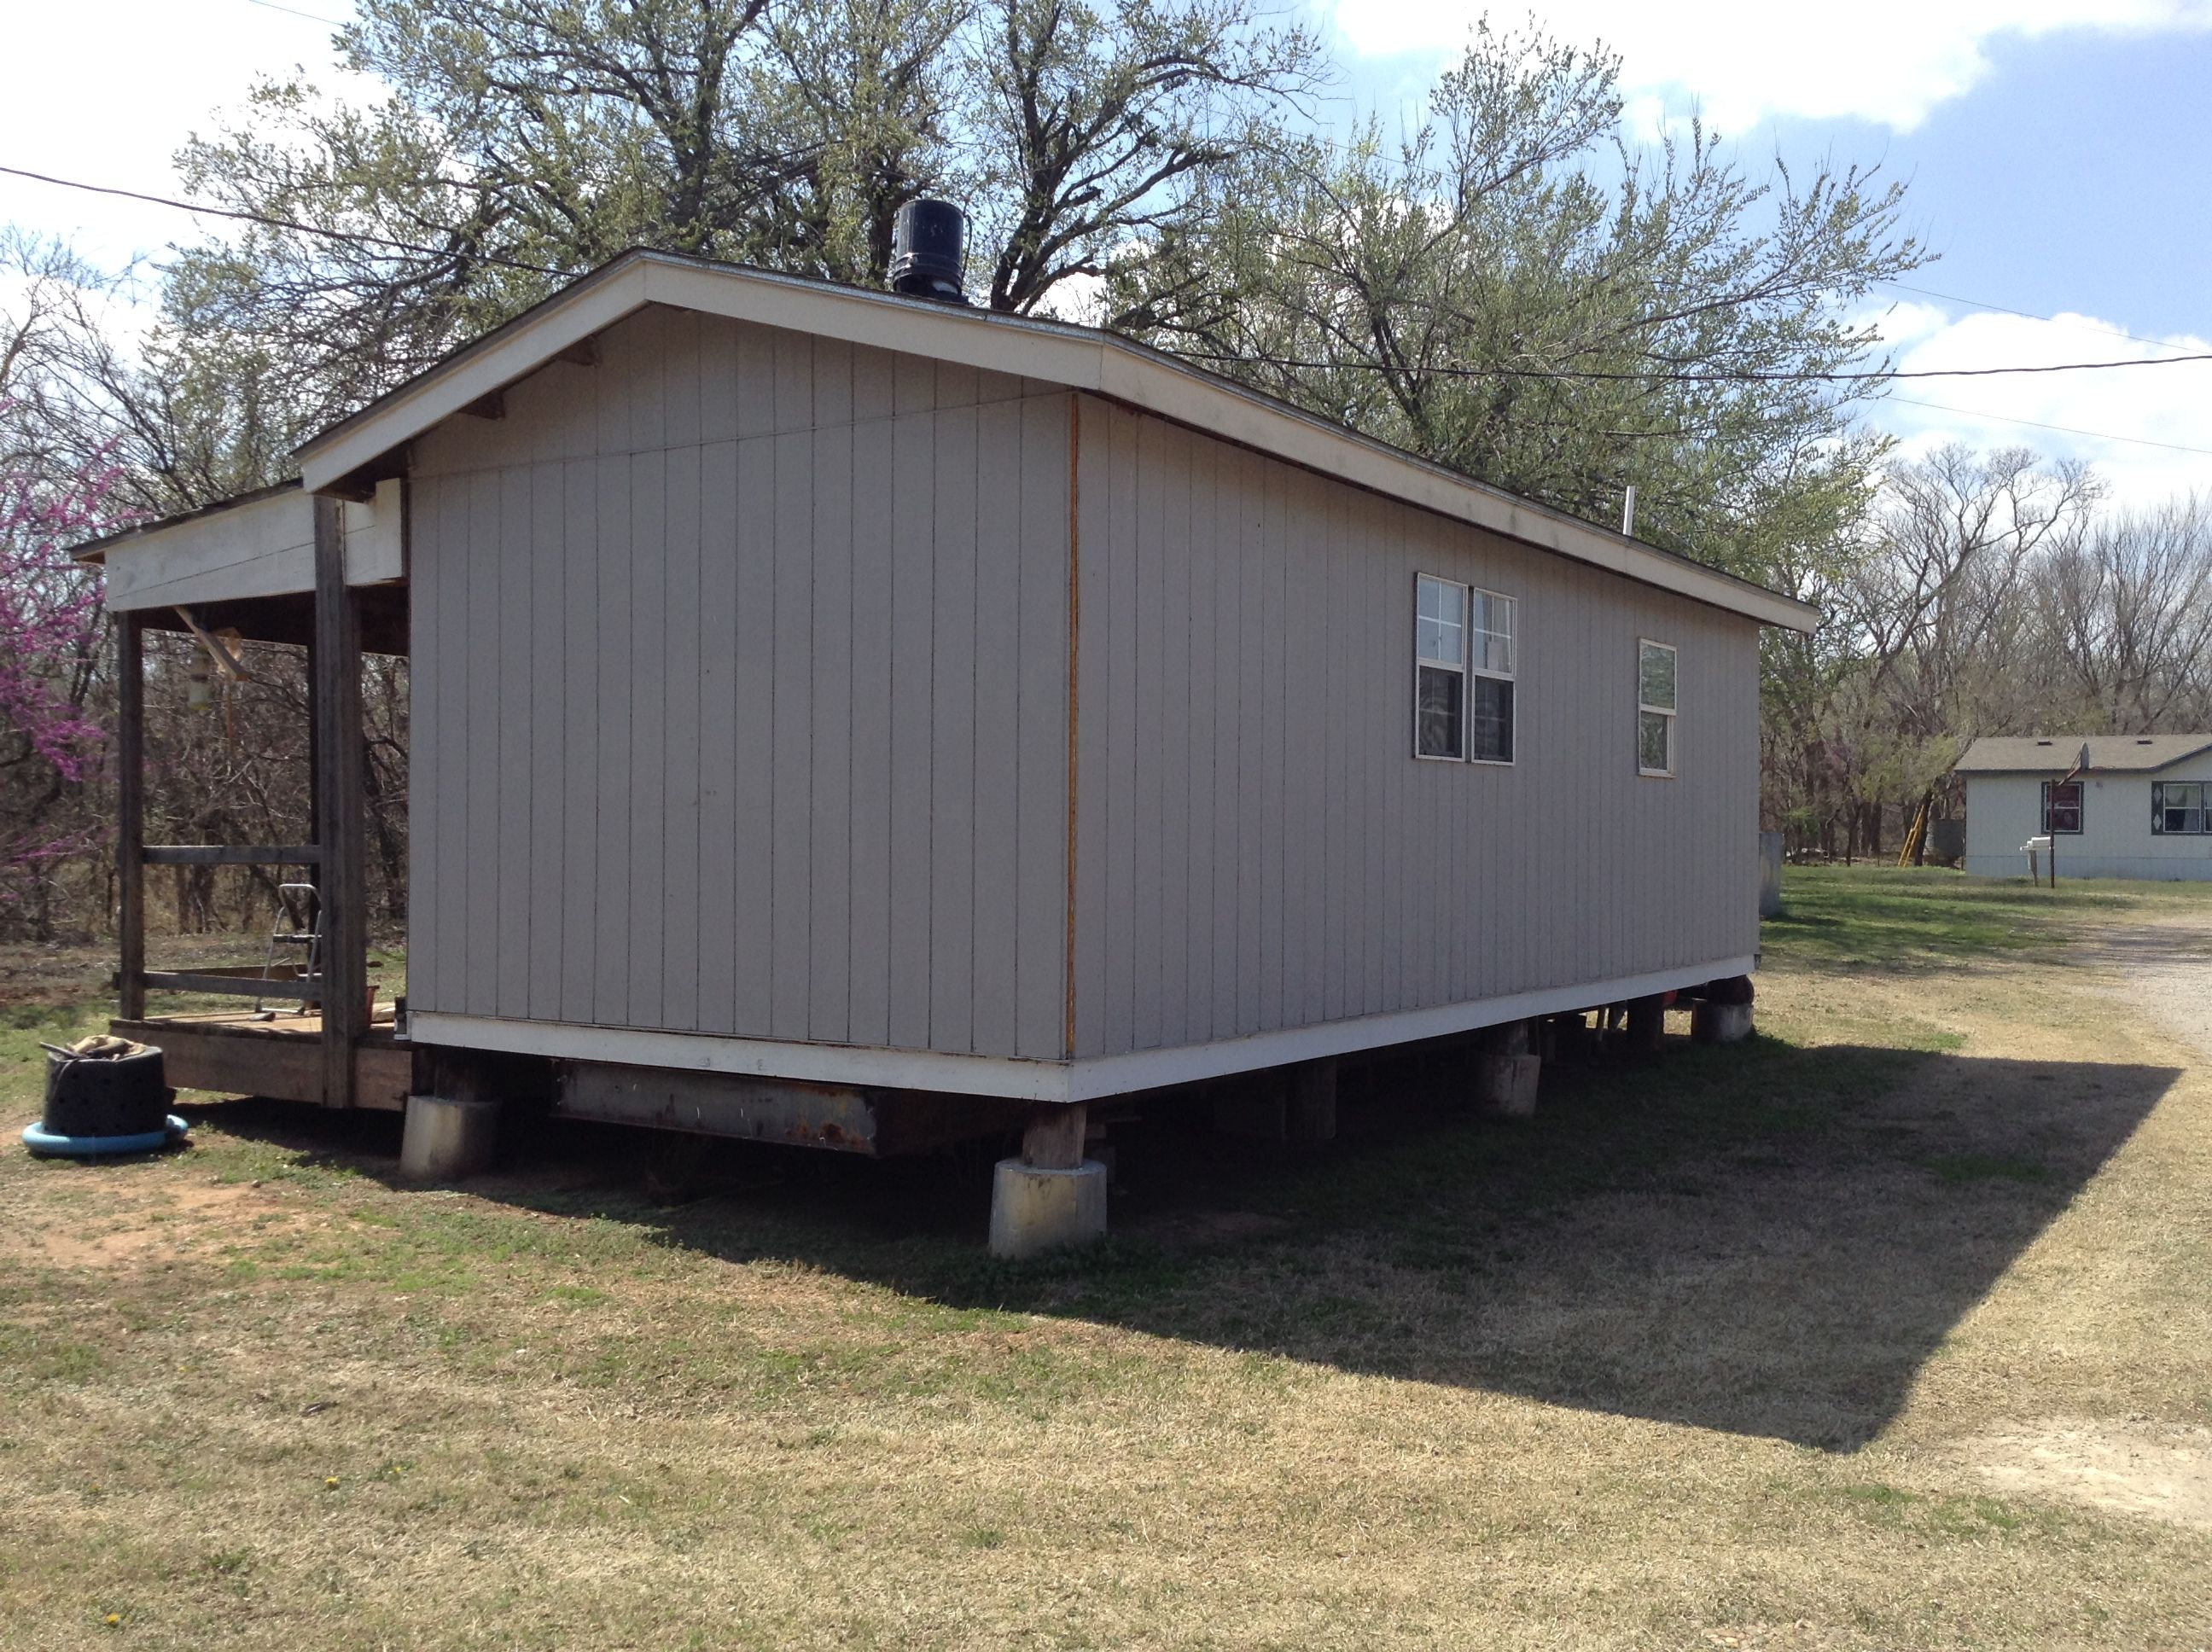 Tiny House Office For Sale Tiny House For Sale In Blanchard Oklahoma Tiny House Listings Tiny Houses For Sale Tiny Home Office Tiny House